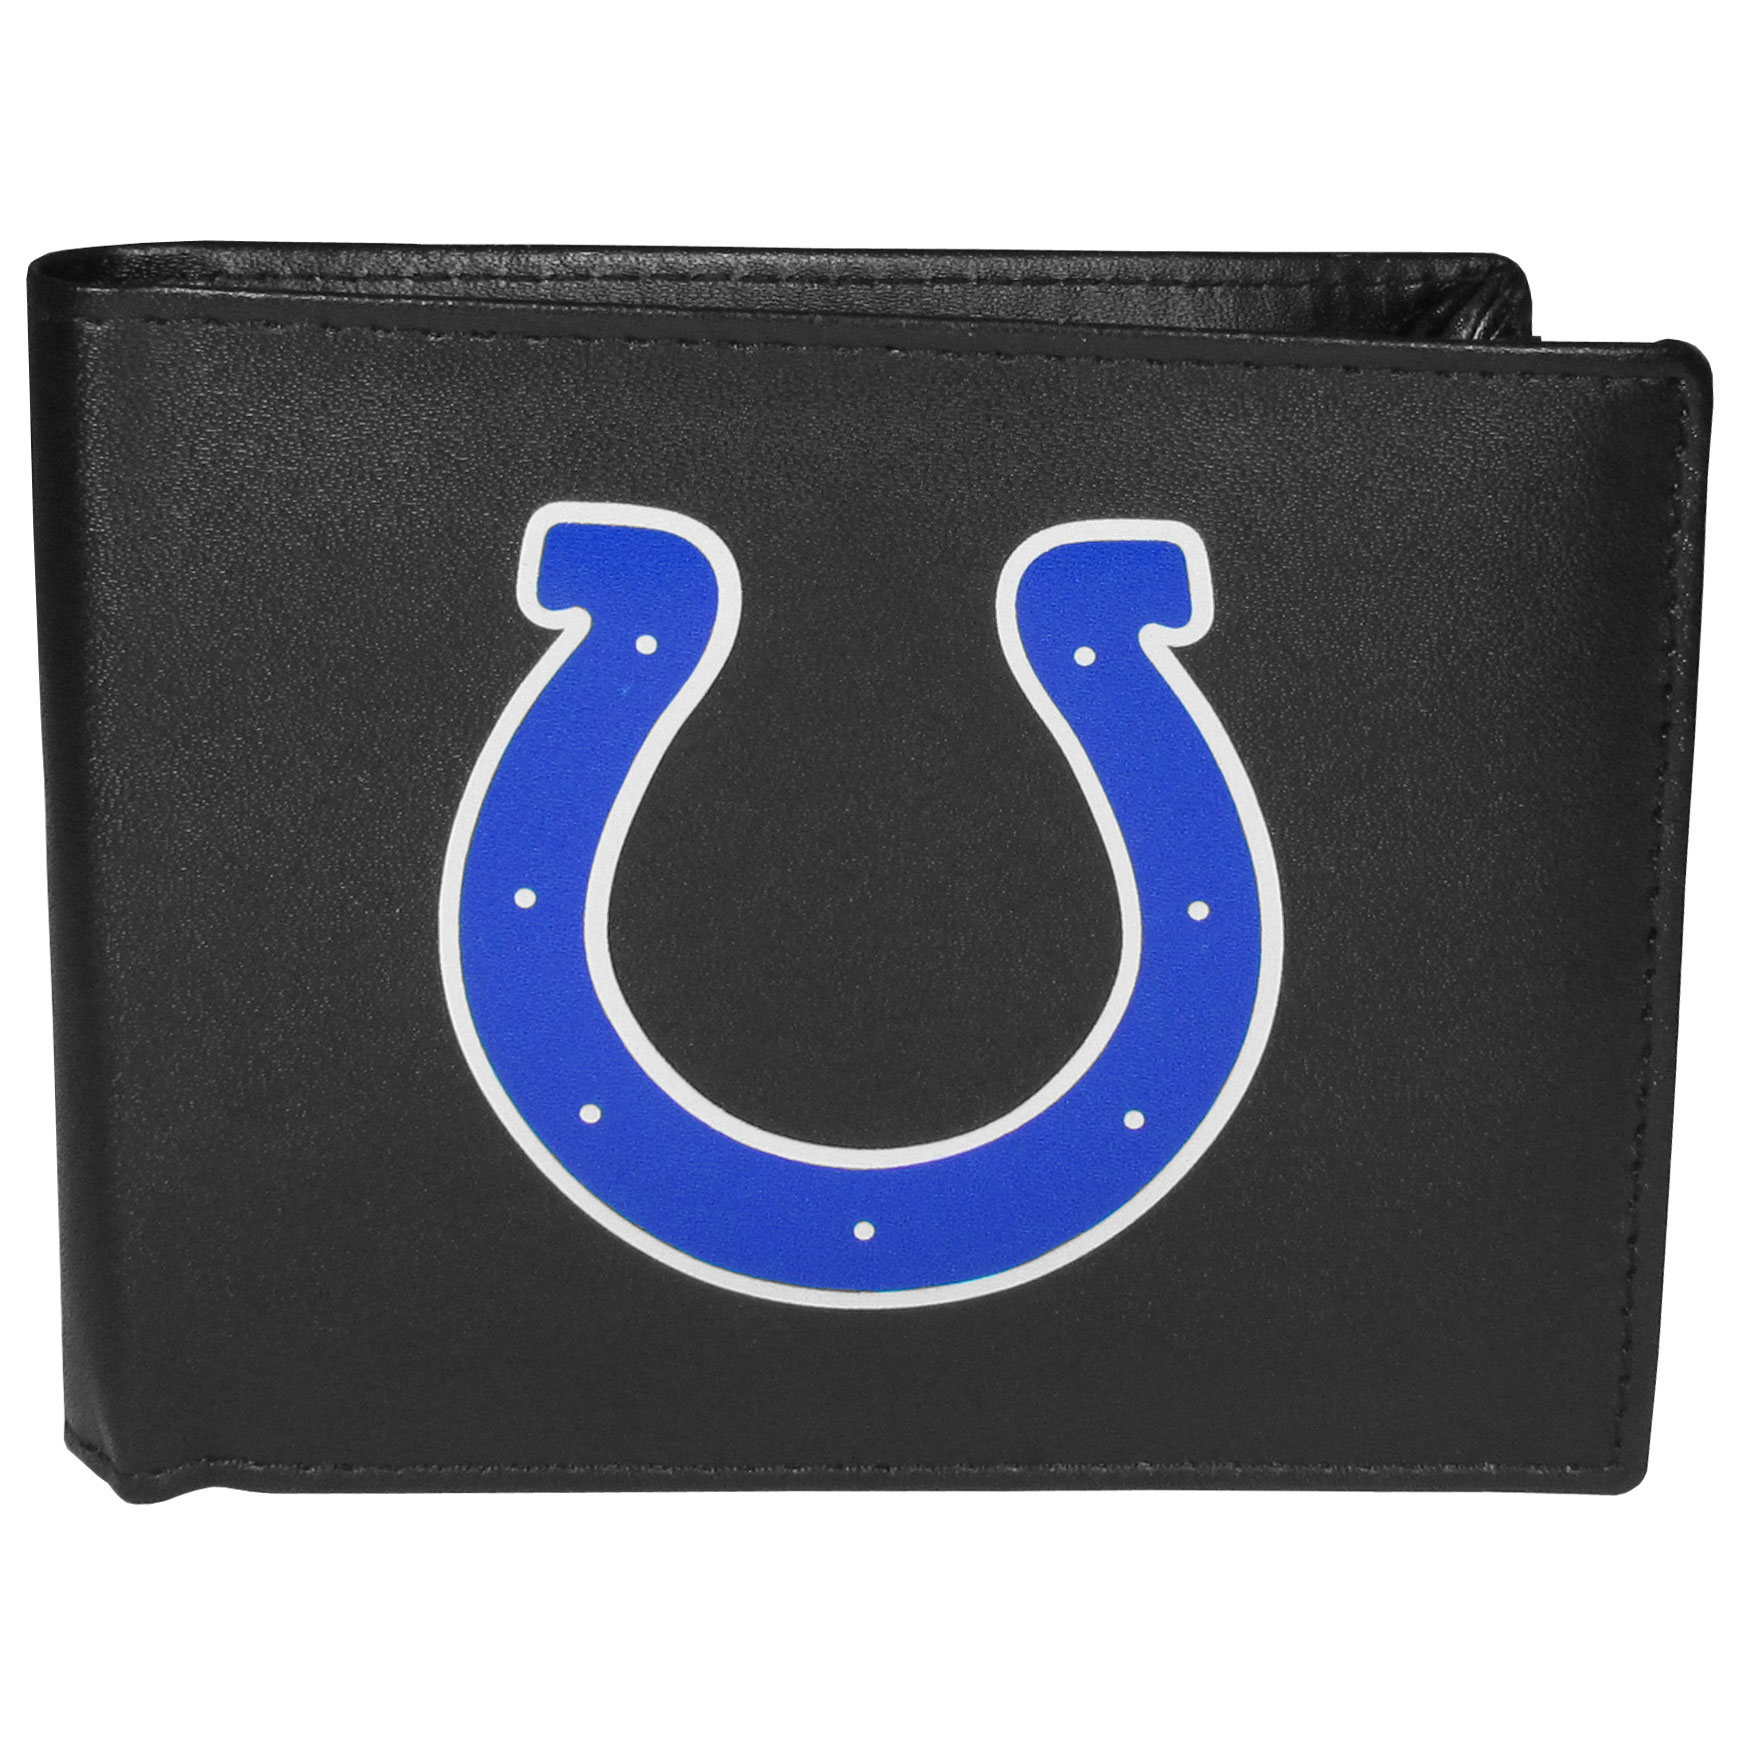 Indianapolis Colts Leather Bi-fold Wallet, Large Logo - Our classic fine leather bi-fold wallet is meticulously crafted with genuine leather that will age beautifully so you will have a quality wallet for years to come. The wallet opens to a large, billfold pocket and numerous credit card slots and has a convenient windowed ID slot. The front of the wallet features an extra large Indianapolis Colts printed logo.